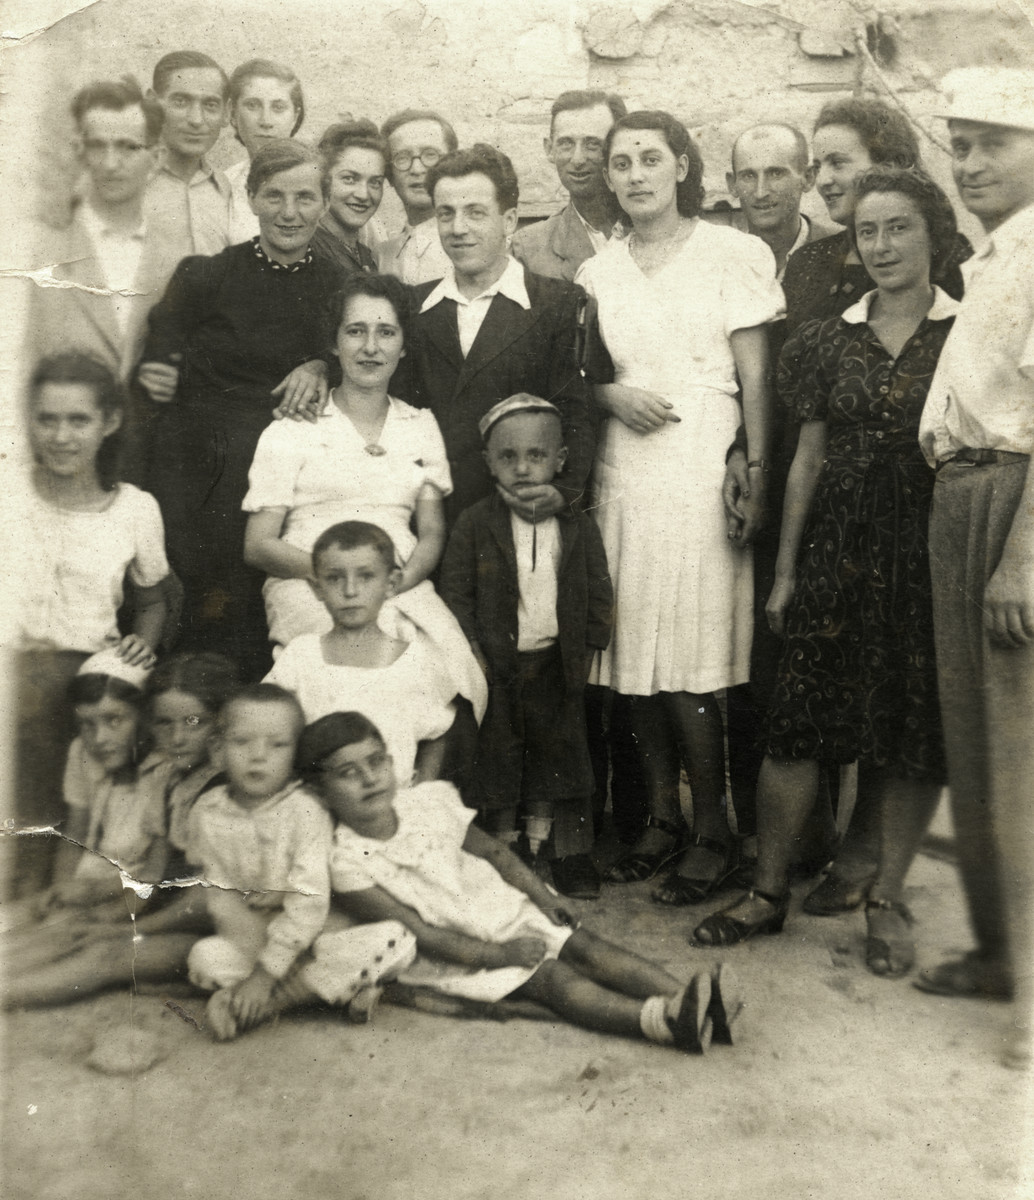 The donor's parents, other Jewish refugees and Uzbeki friends celebrate a wedding in Bukhara in the 1940's.   Jonas and Rywka Markowicz are pictured in the top left of the photograph.